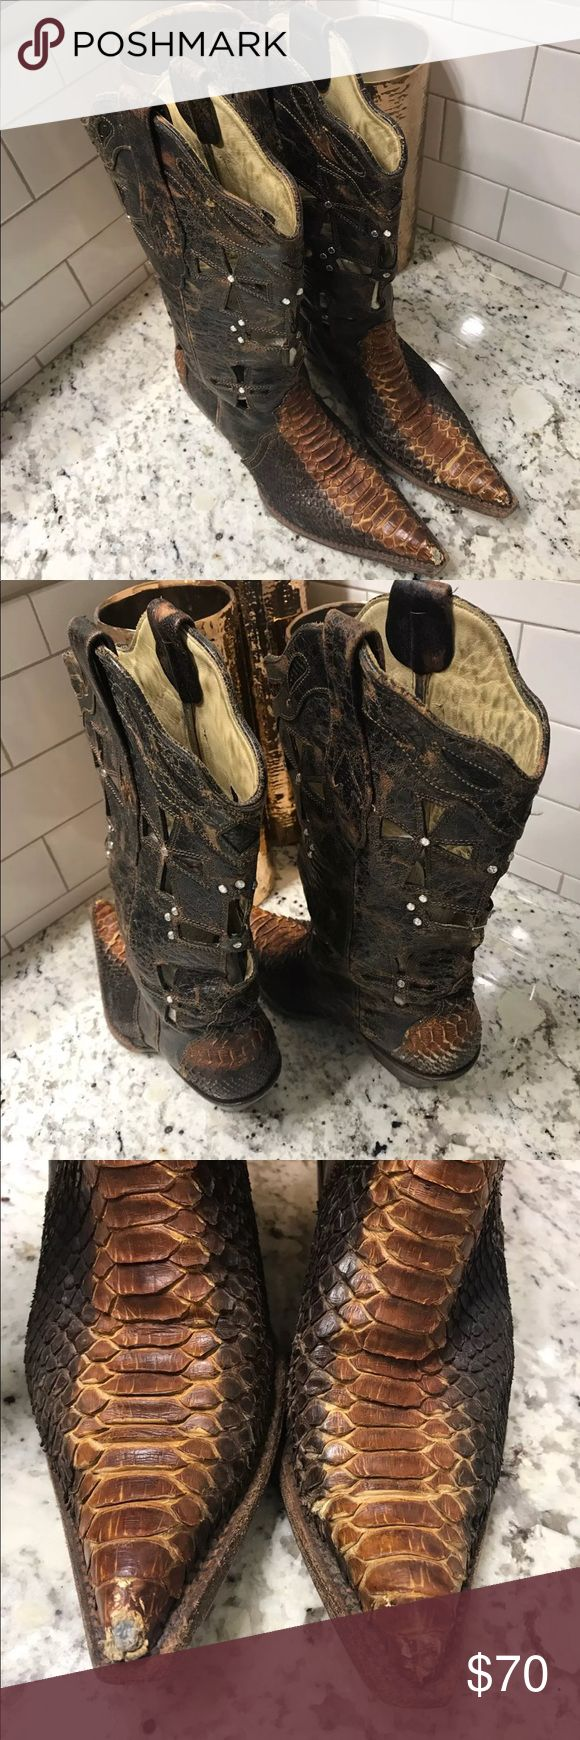 Corral snakeskin cowboy boots Euc, only wear is really on the toe as shown in the pics. These have the cut out crosses with rhinestones. Super cute, received many compliments on these! Hate to see them go but I have so many!! I ship everyday!! corral Shoes